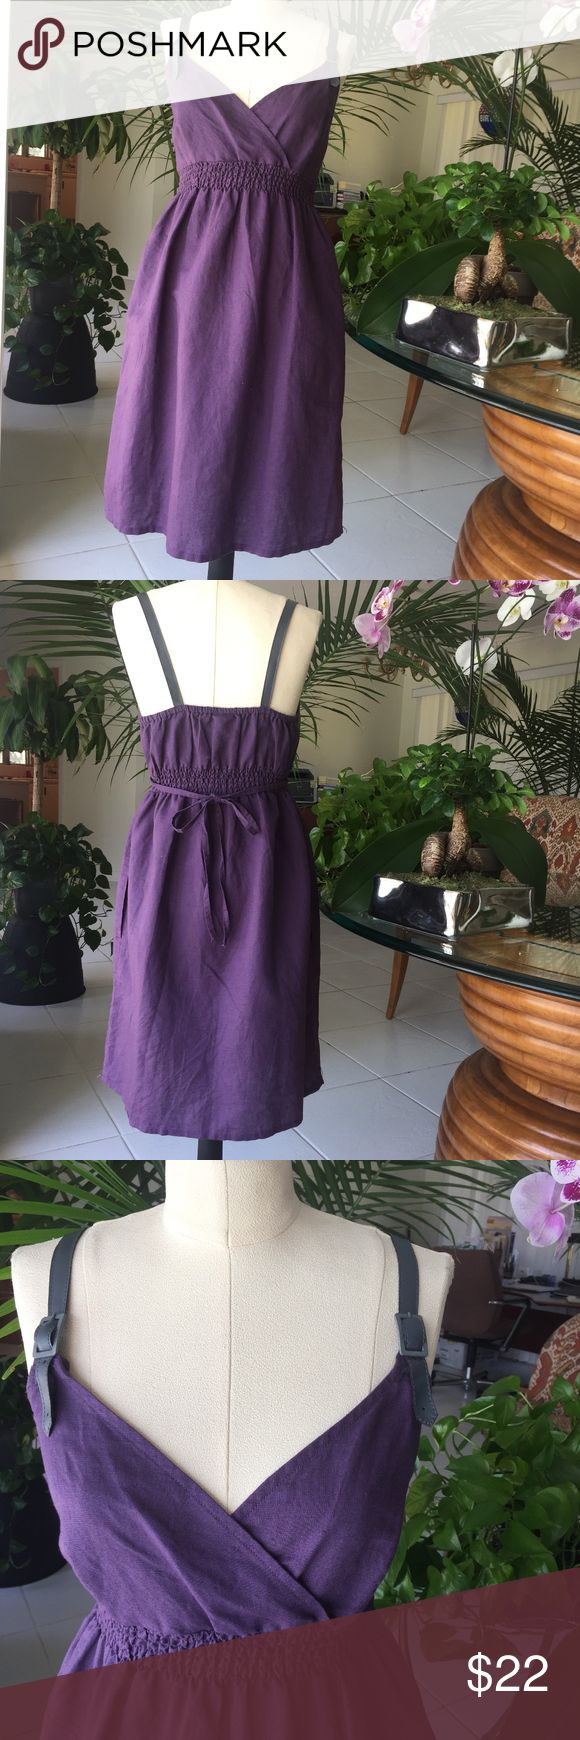 Converse purple midi dress Converse purple beach dress , the top has a crossover front , elasticized waist with self back tie , side hidden pockets , adjustable buckle leather like straps , 55% linen / 45% cotton blend , size M , new no tags , in perfect condition , comes from a non smoking home . Converse Dresses Midi